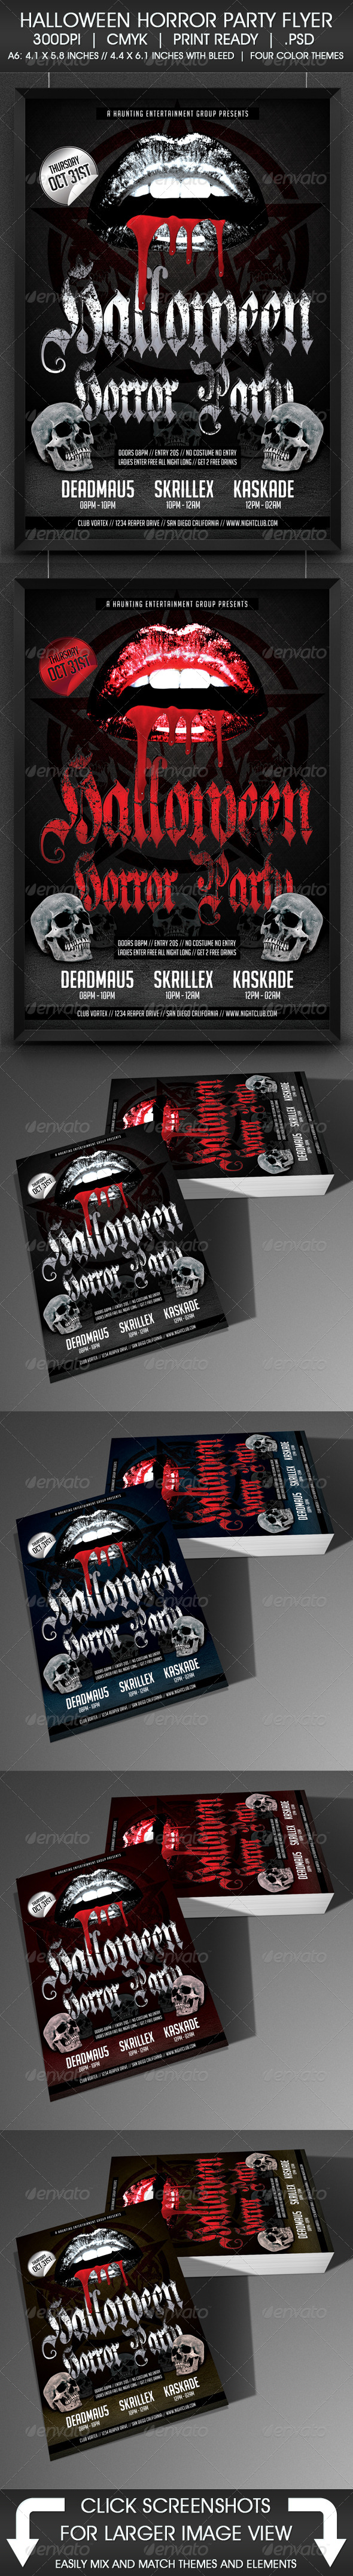 Halloween Horror Party Flyer - Events Flyers